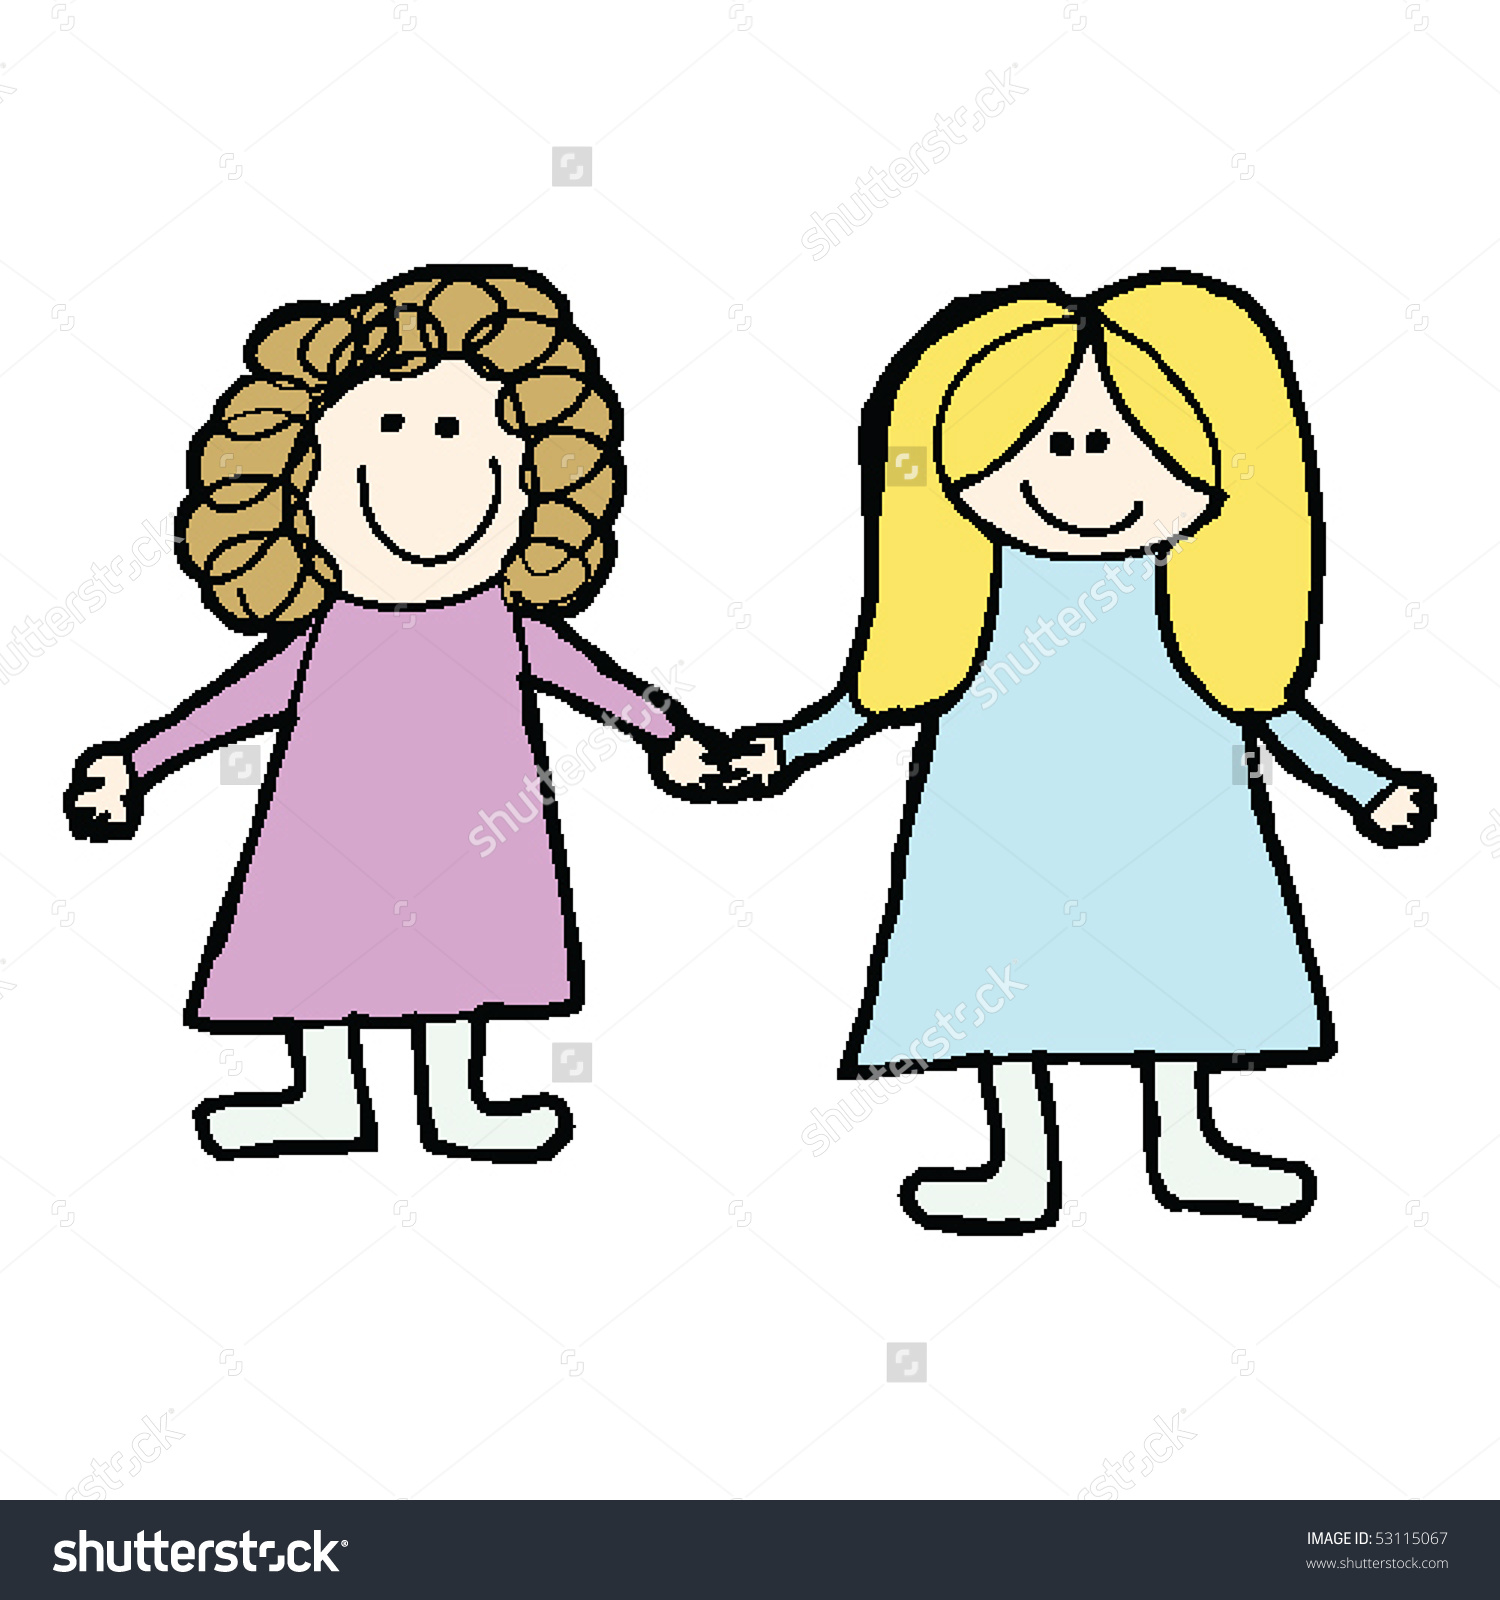 Two freinds hugging clipart emotional image Friends Hugging | Free download best Friends Hugging on ... image